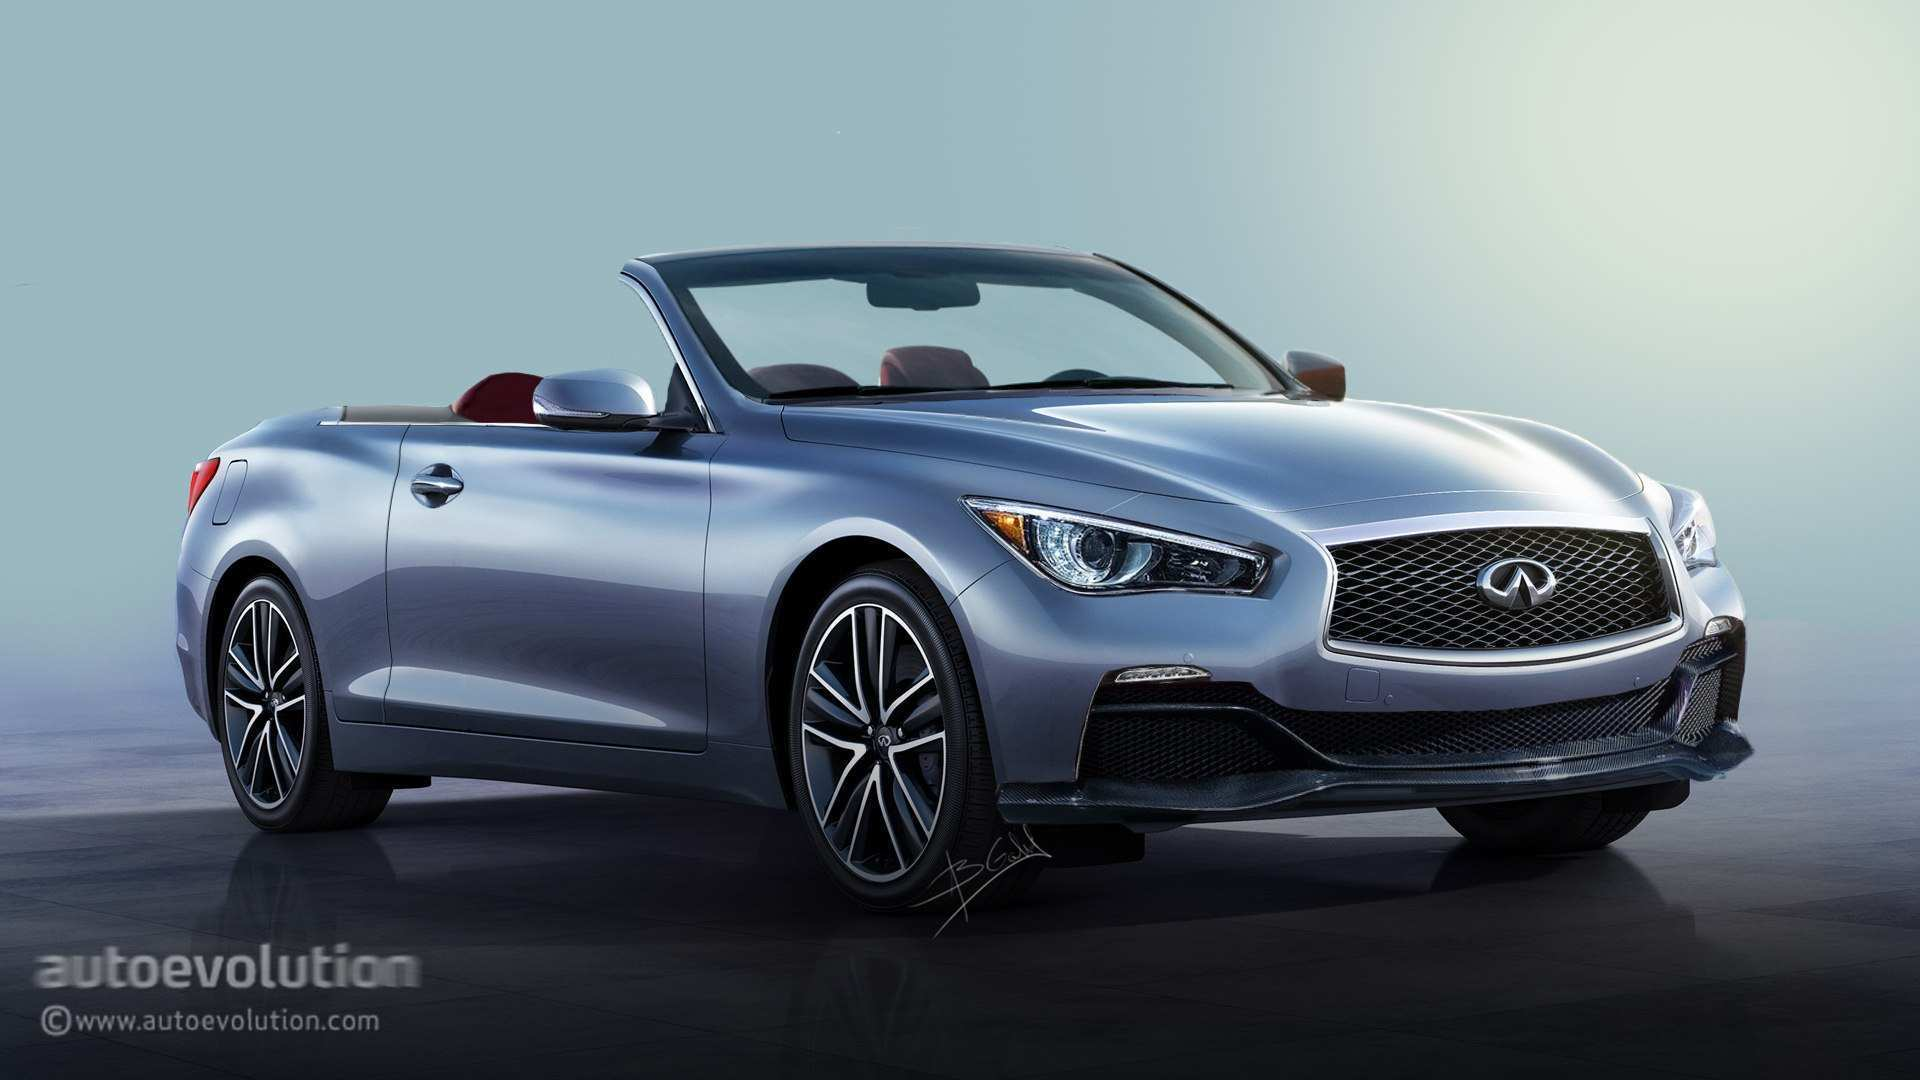 68 The Best 2020 Infiniti Q60 Coupe Convertible Wallpaper